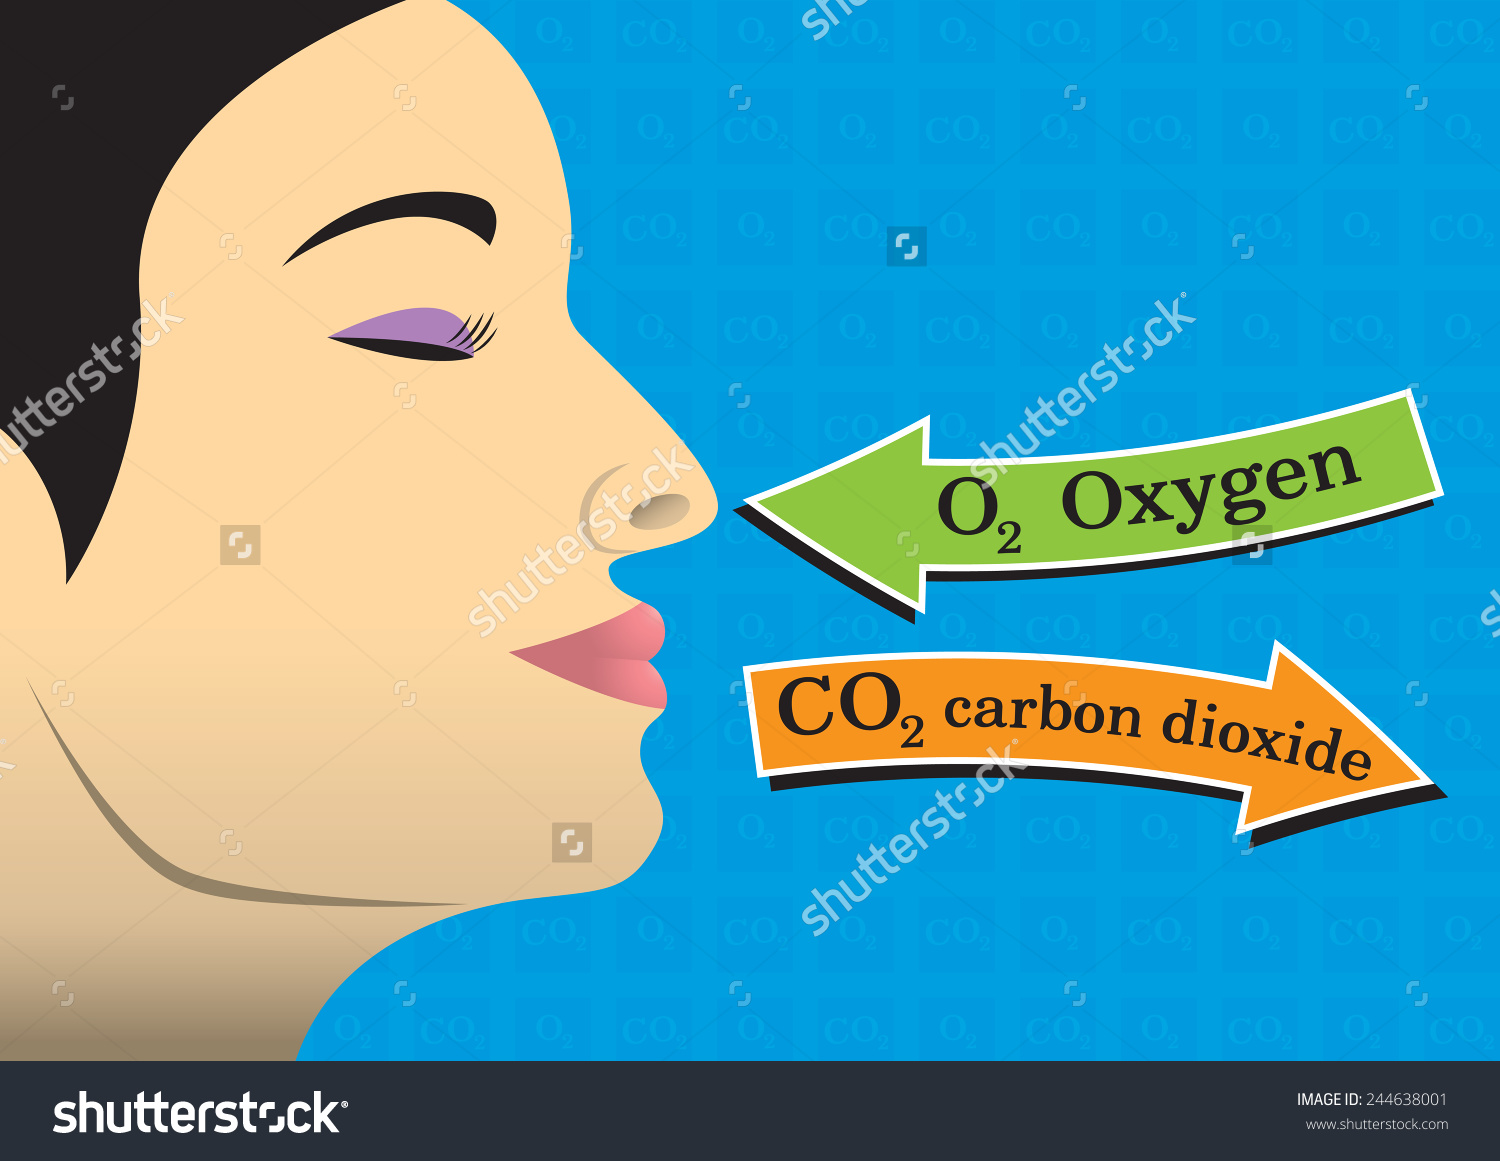 Humans Need Oxygen Live Stock Vector 244638001.